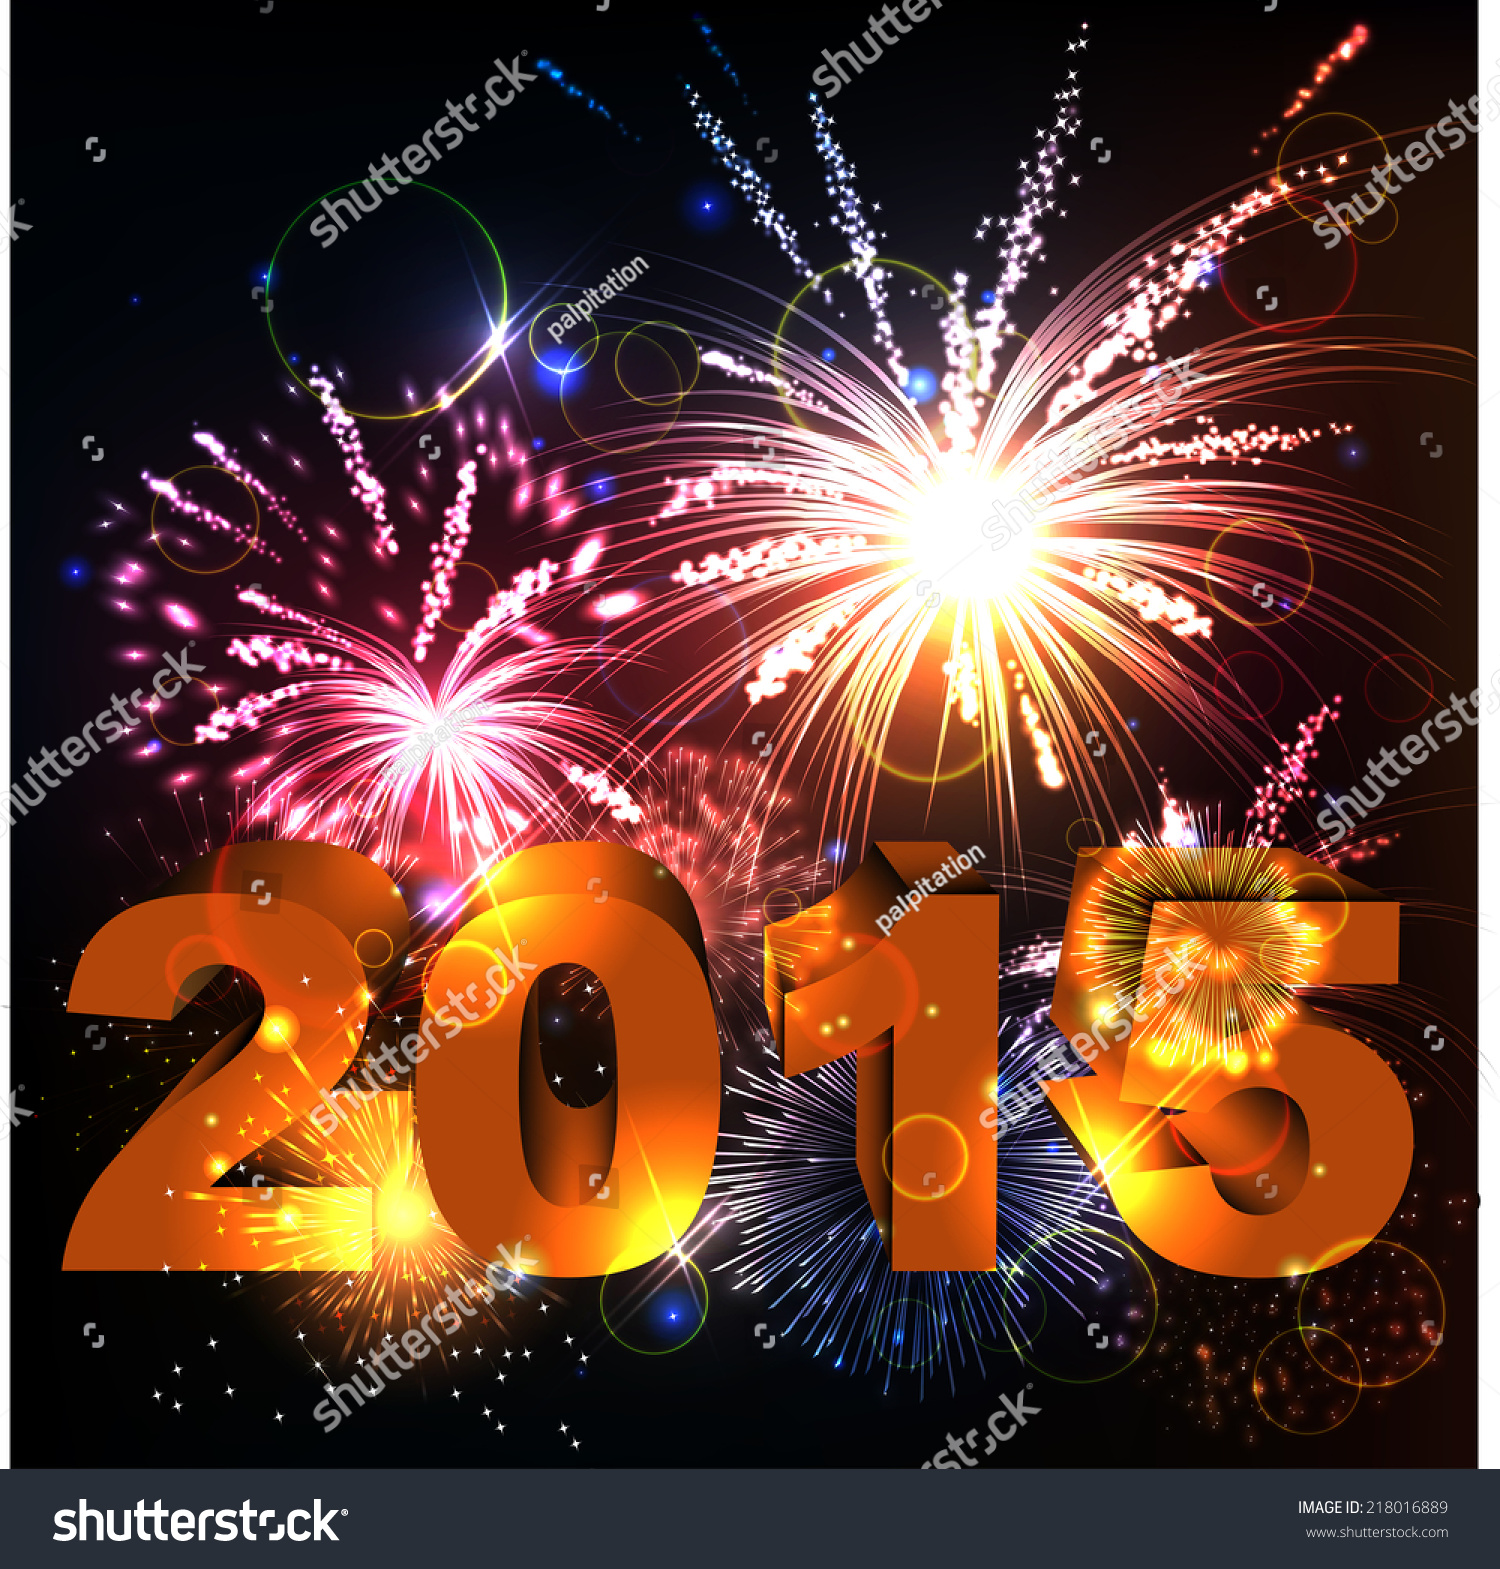 Tomb Rider Wallpaper: 2015 Happy New Year Celebration Background Stock Vector